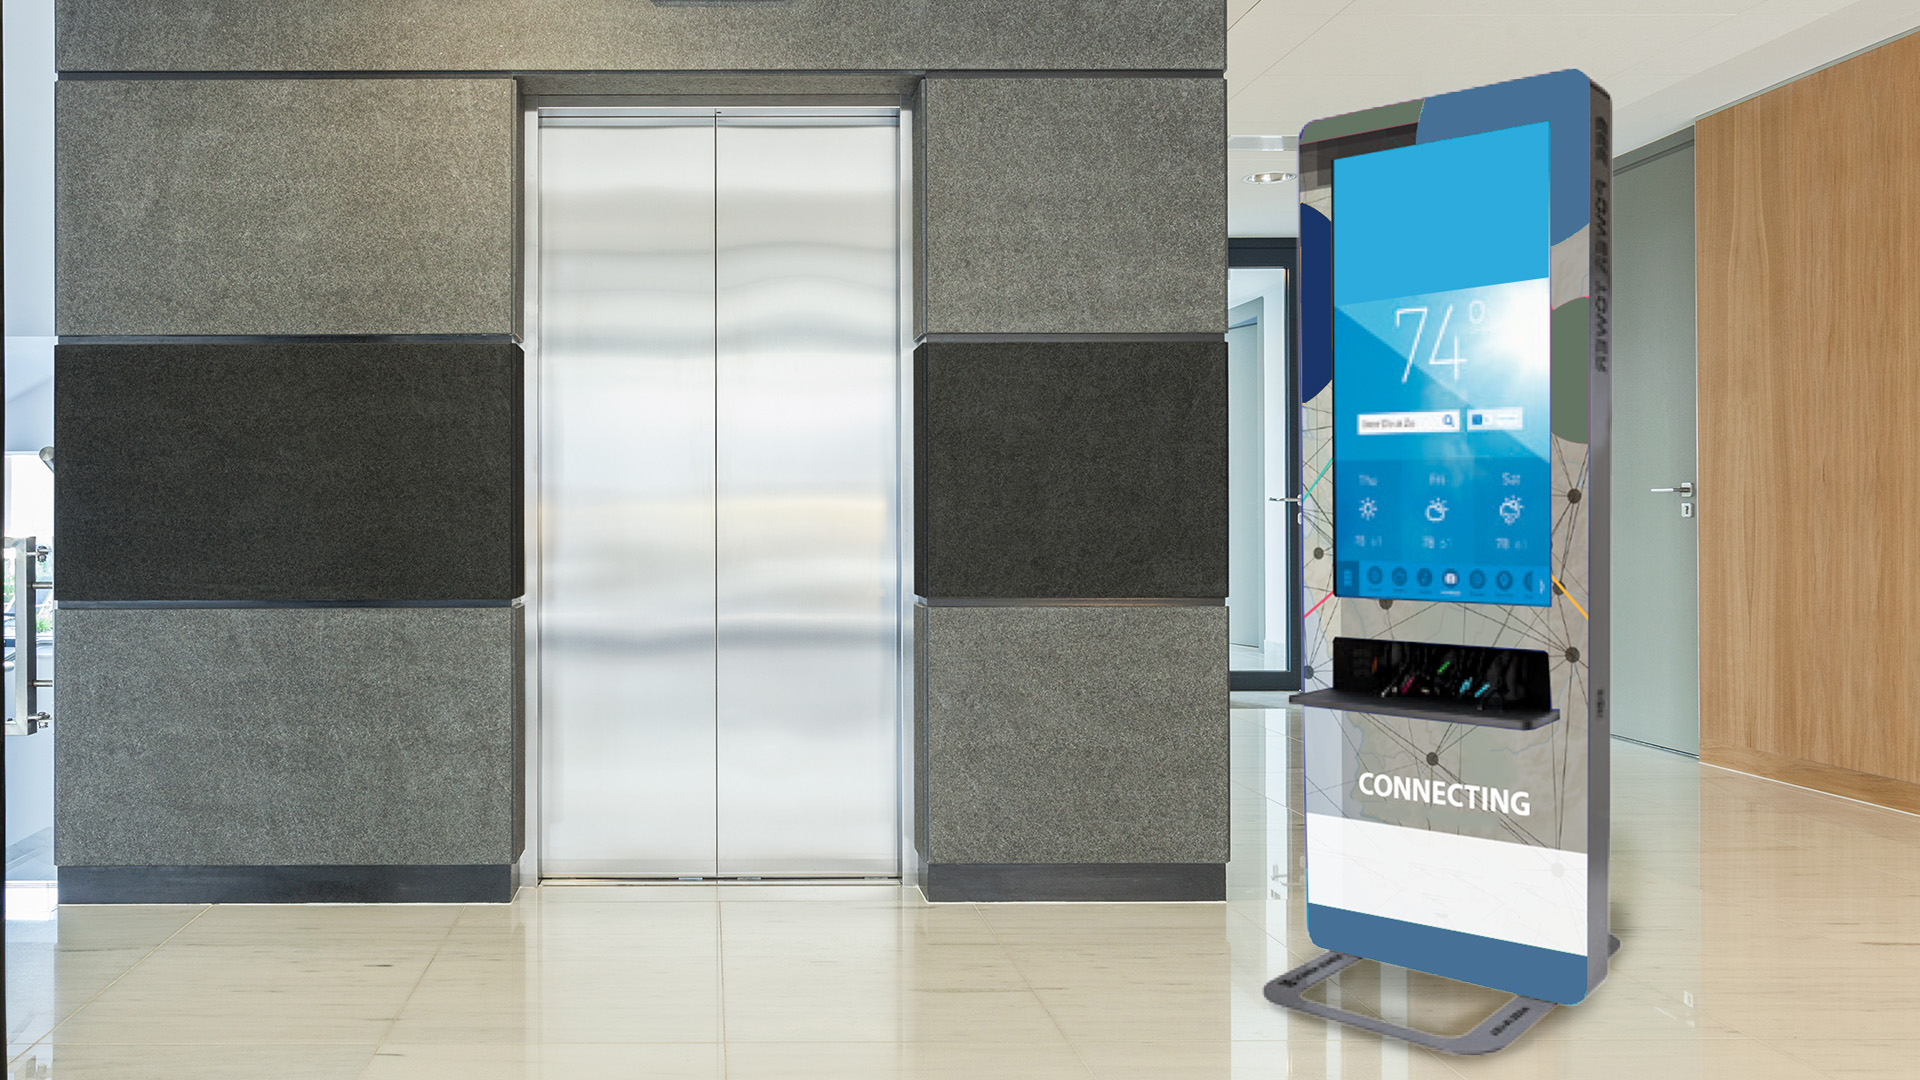 Smart_Kiosk_Wayfinding_Digital